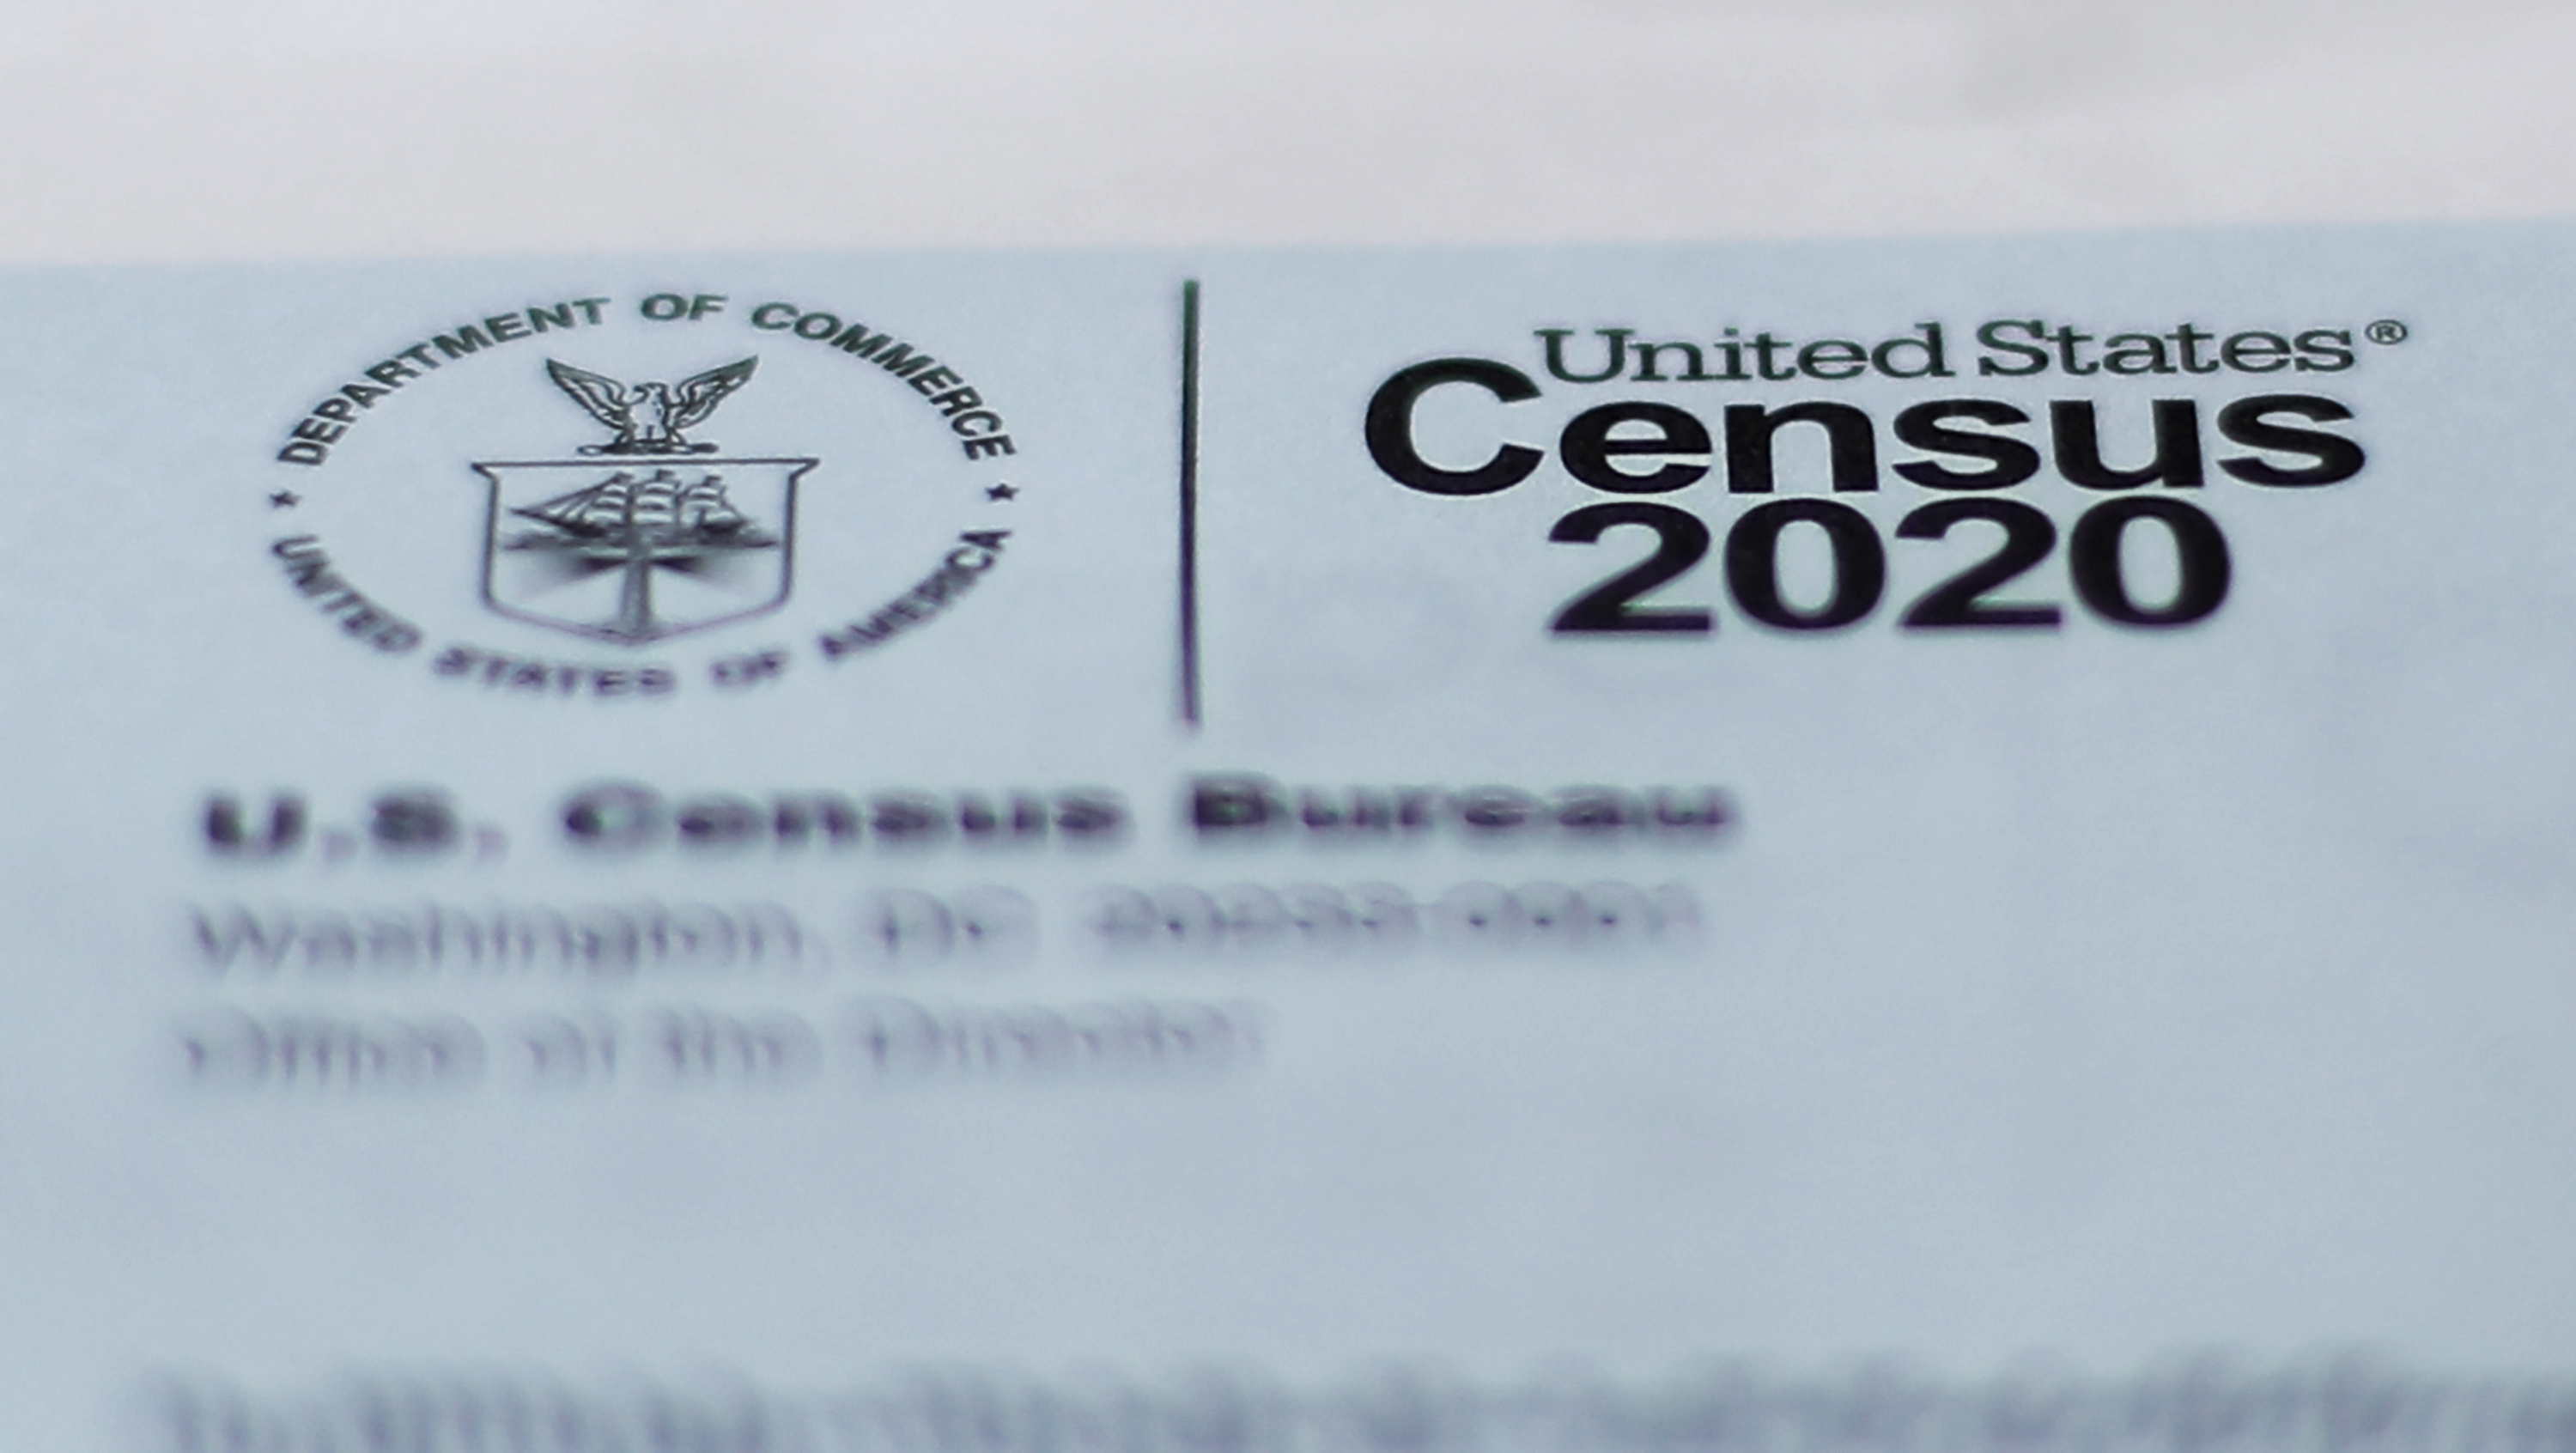 A 2020 census letter mailed to a U.S. resident, is shown in Detroit, Sunday, April 5, 2020. The Census Bureau is required by federal statute to send the president the counts that will be used to carve up congressional districts — known as apportionment — and draw state legislative districts by Dec. 31. The new coronavirus COVID-19 spread forced the U.S. Census Bureau to suspend field operations (AP Photo/Paul Sancya)